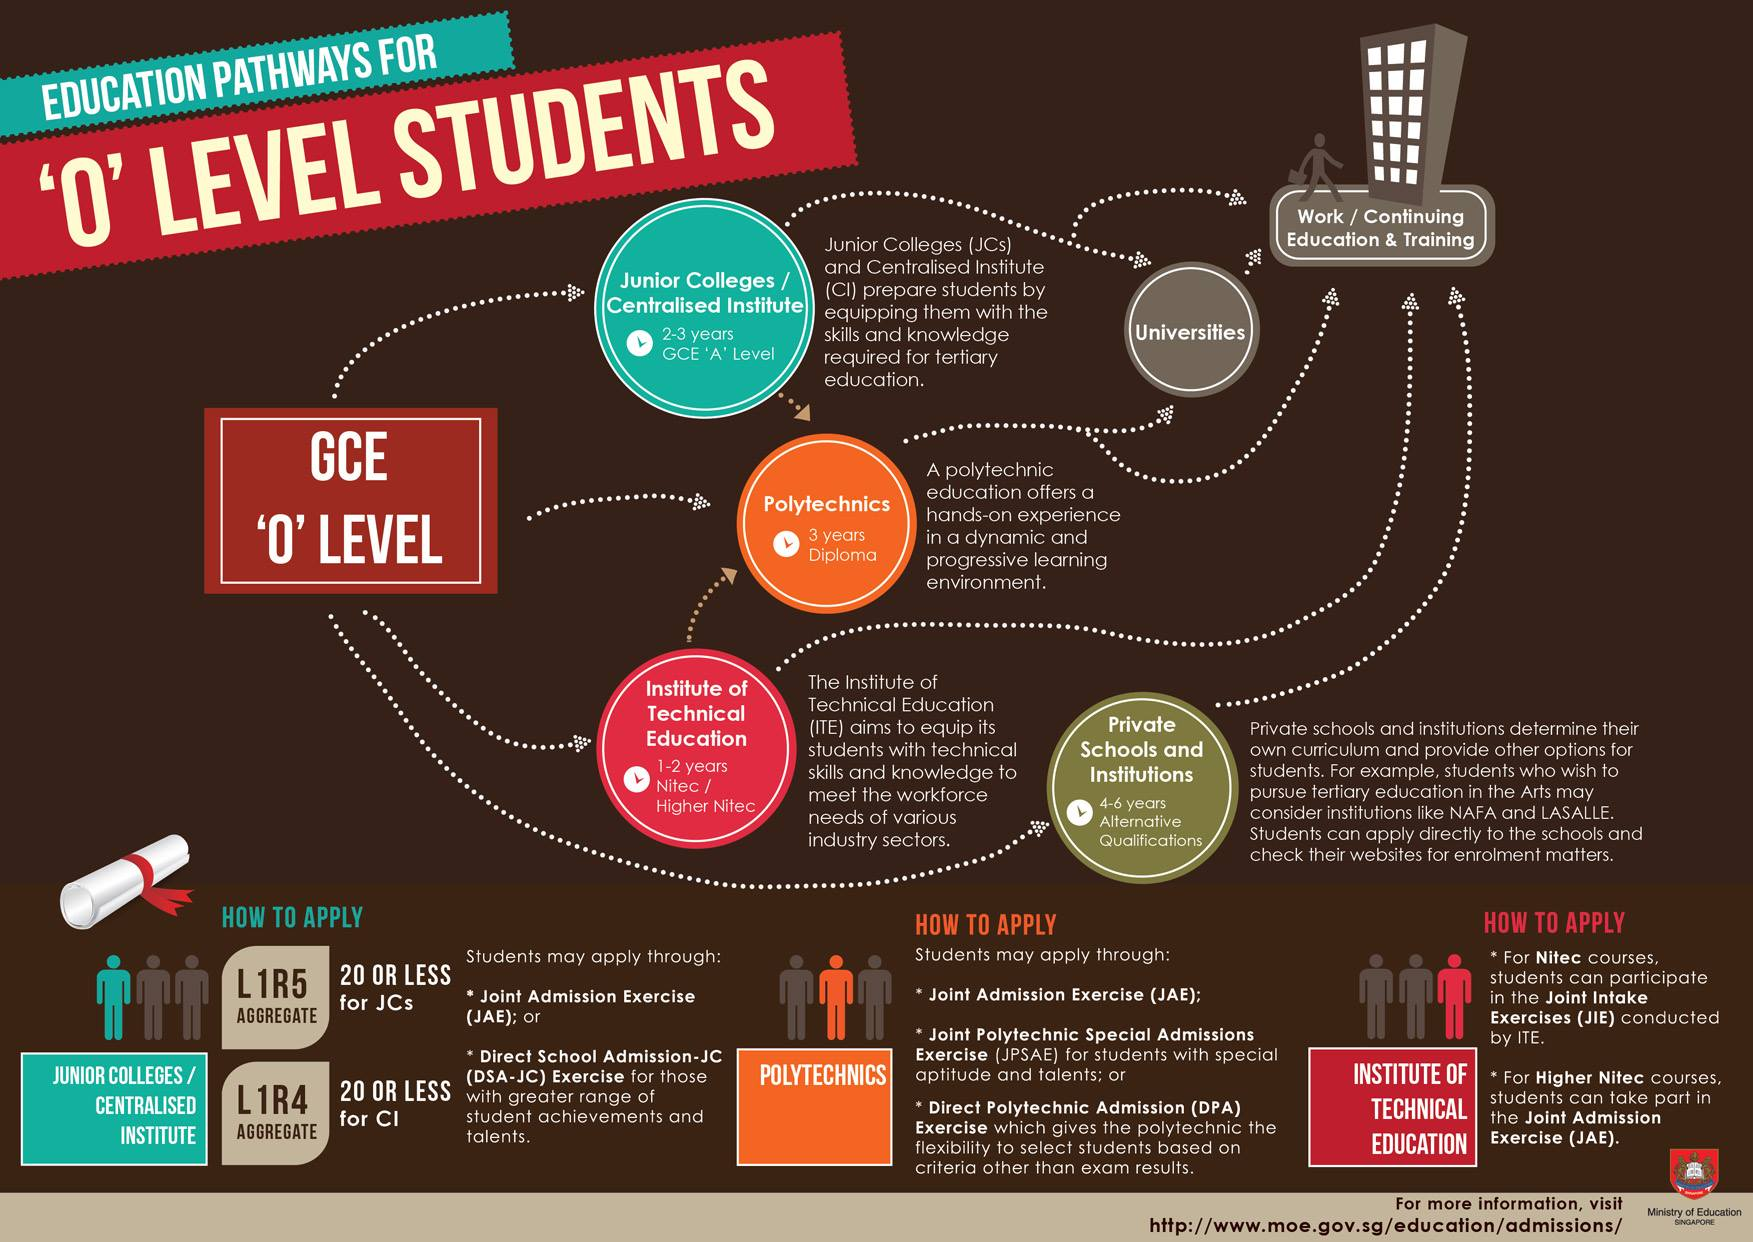 Education Pathways for 'O' Level Students